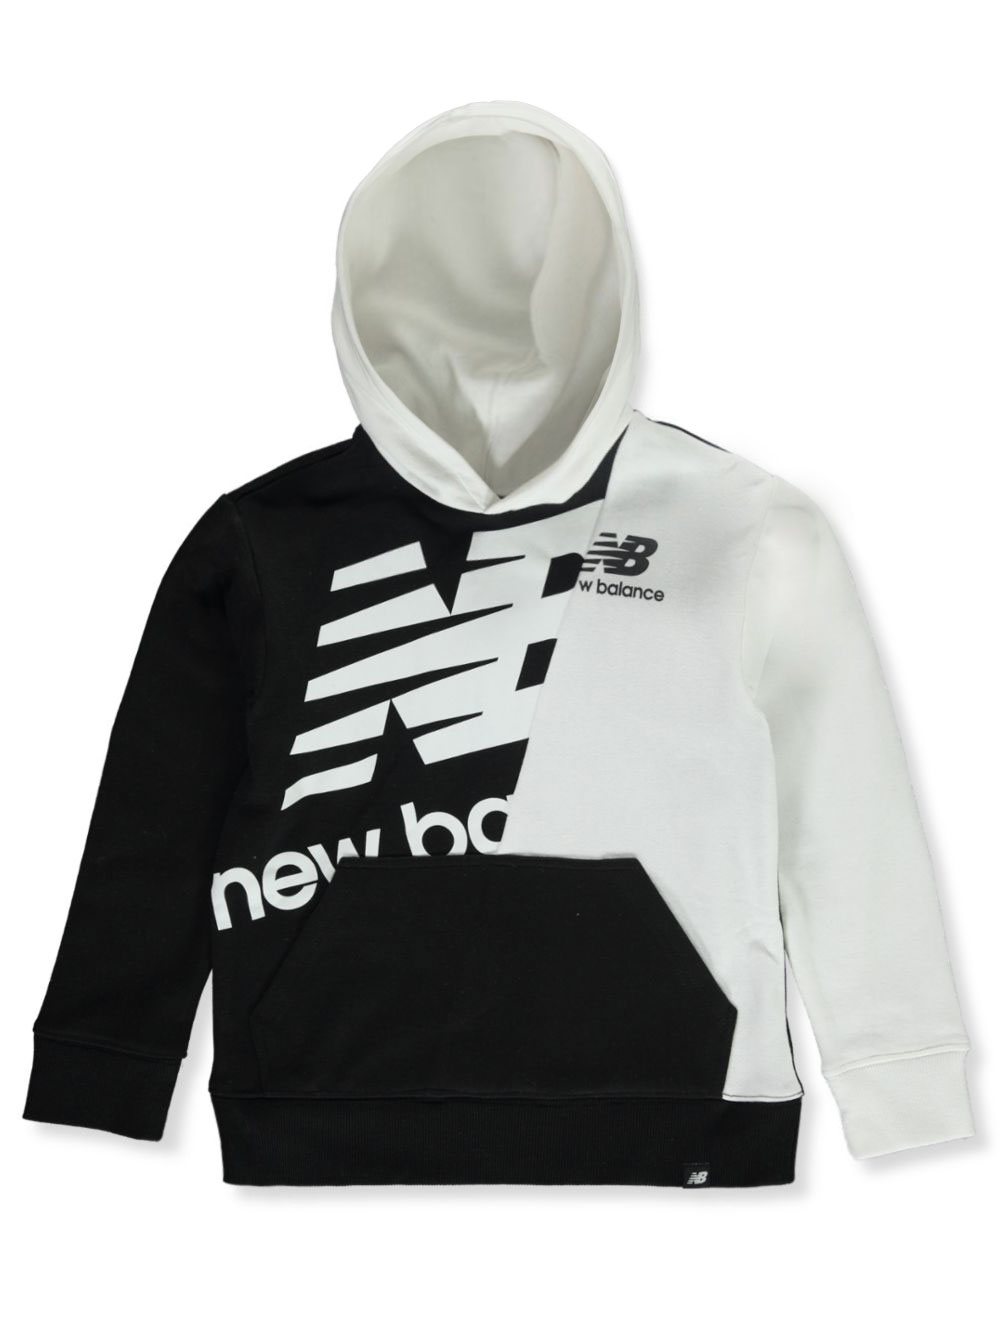 Boys' Pullover Hooded Sweatshirt